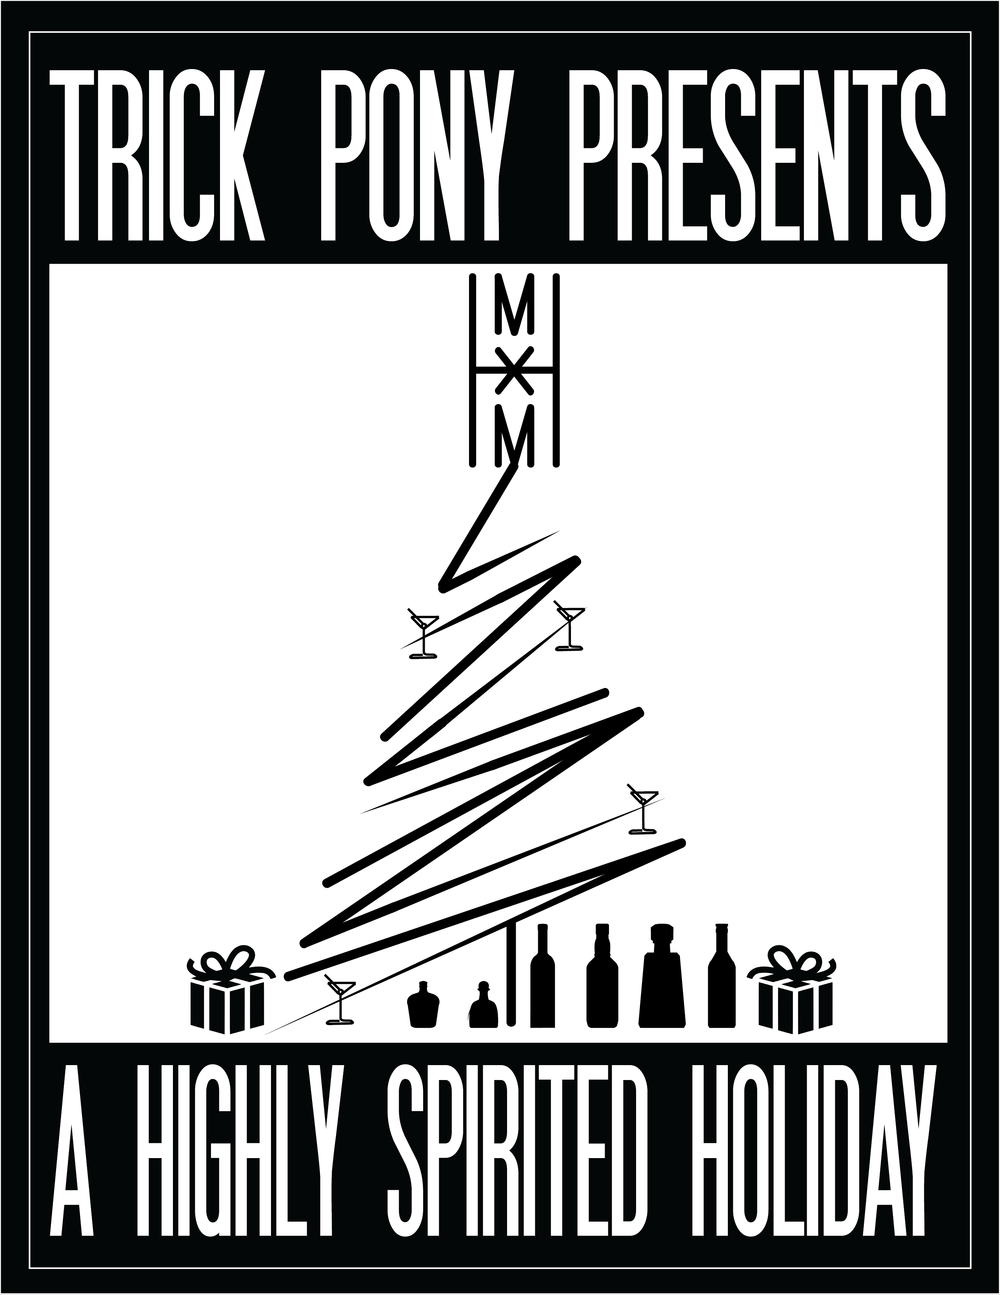 A HIGHLY SPIRITED HOLIDAY_R2-03.png